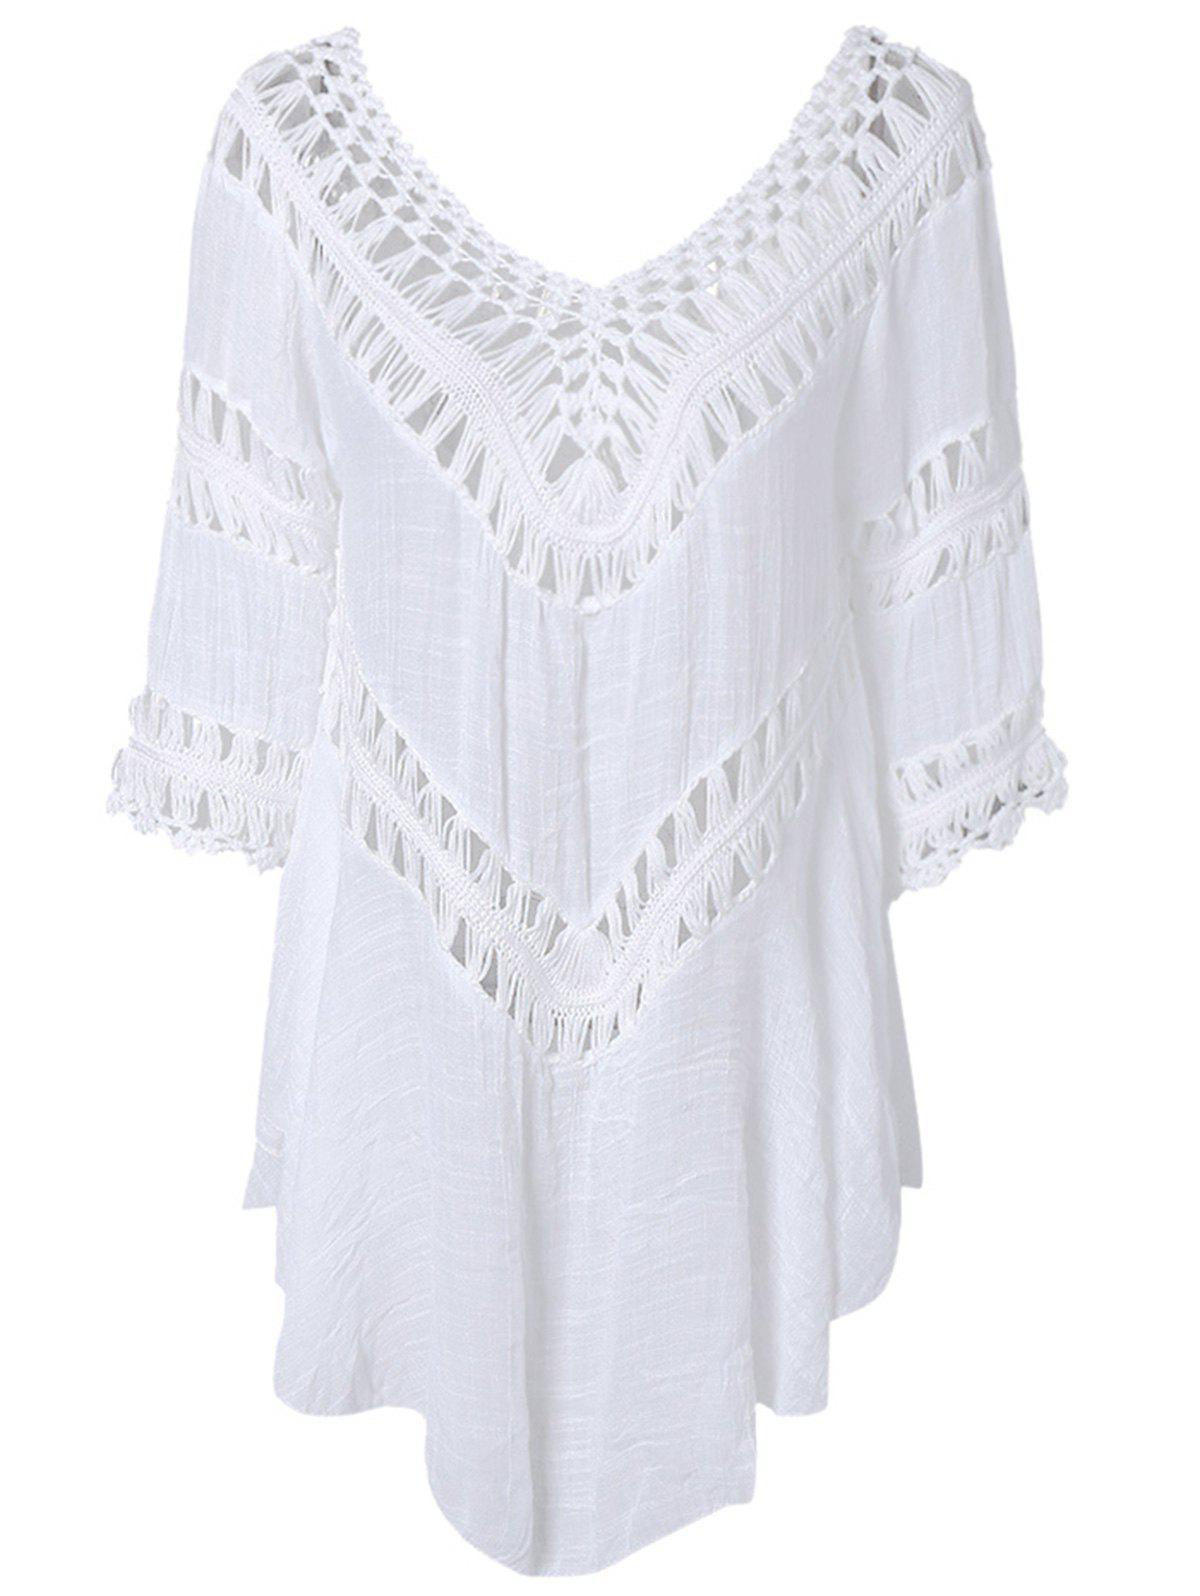 Plunge V Neck See-Through Crochet Tunic TopWOMEN<br><br>Size: ONE SIZE; Color: WHITE; Style: Fashion; Material: Polyester; Shirt Length: Long; Sleeve Length: Three Quarter; Collar: Plunging Neck; Pattern Type: Solid; Embellishment: Hollow Out; Season: Fall,Spring,Summer; Weight: 0.211kg; Package Contents: 1 x Blouse;